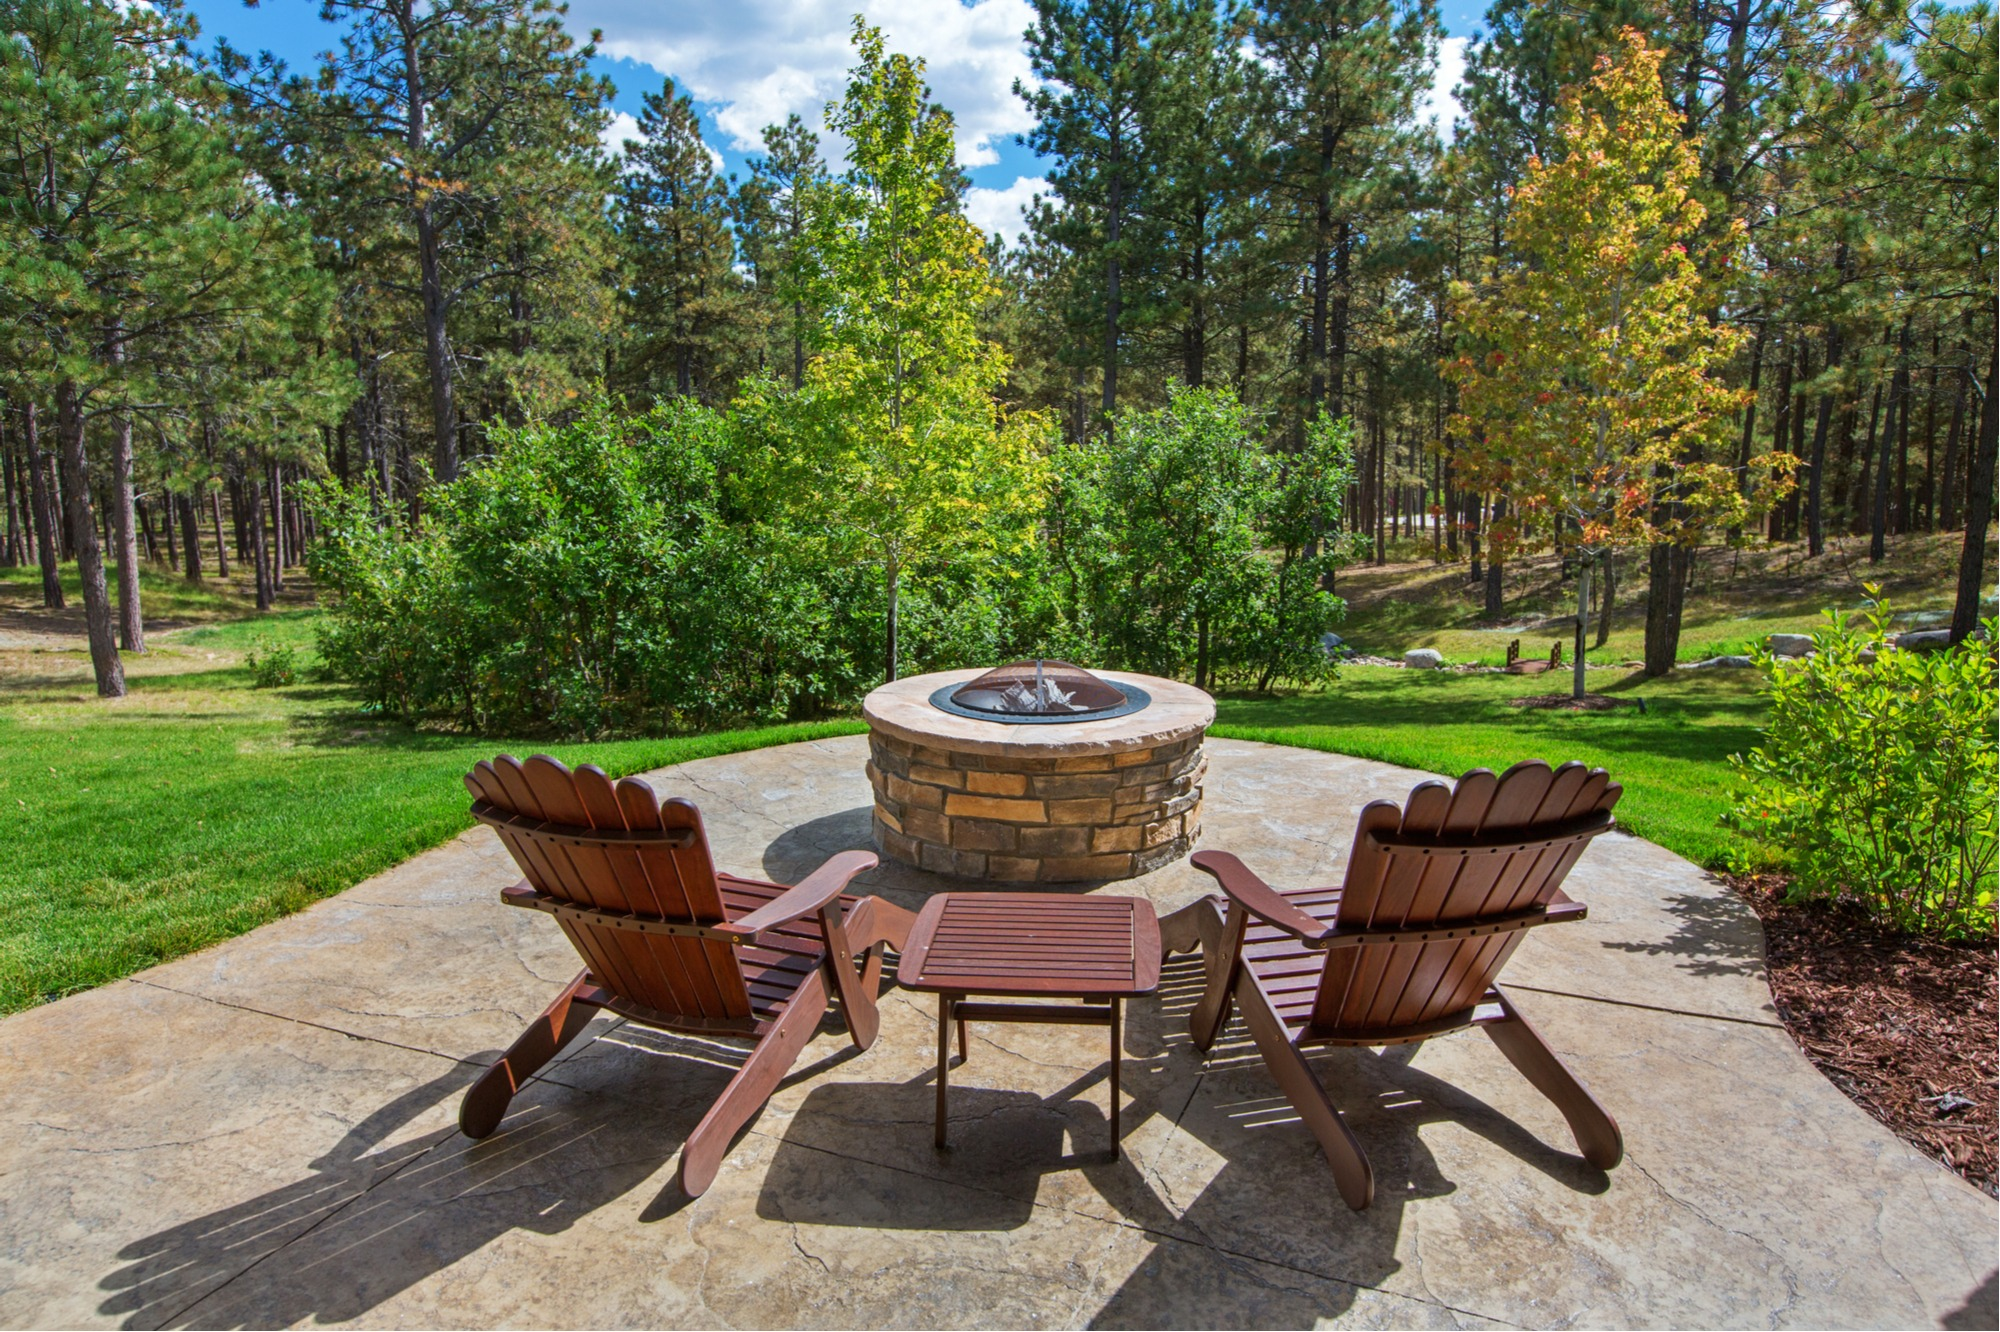 Fire Pit Outdoor Fireplace Accessories Guide